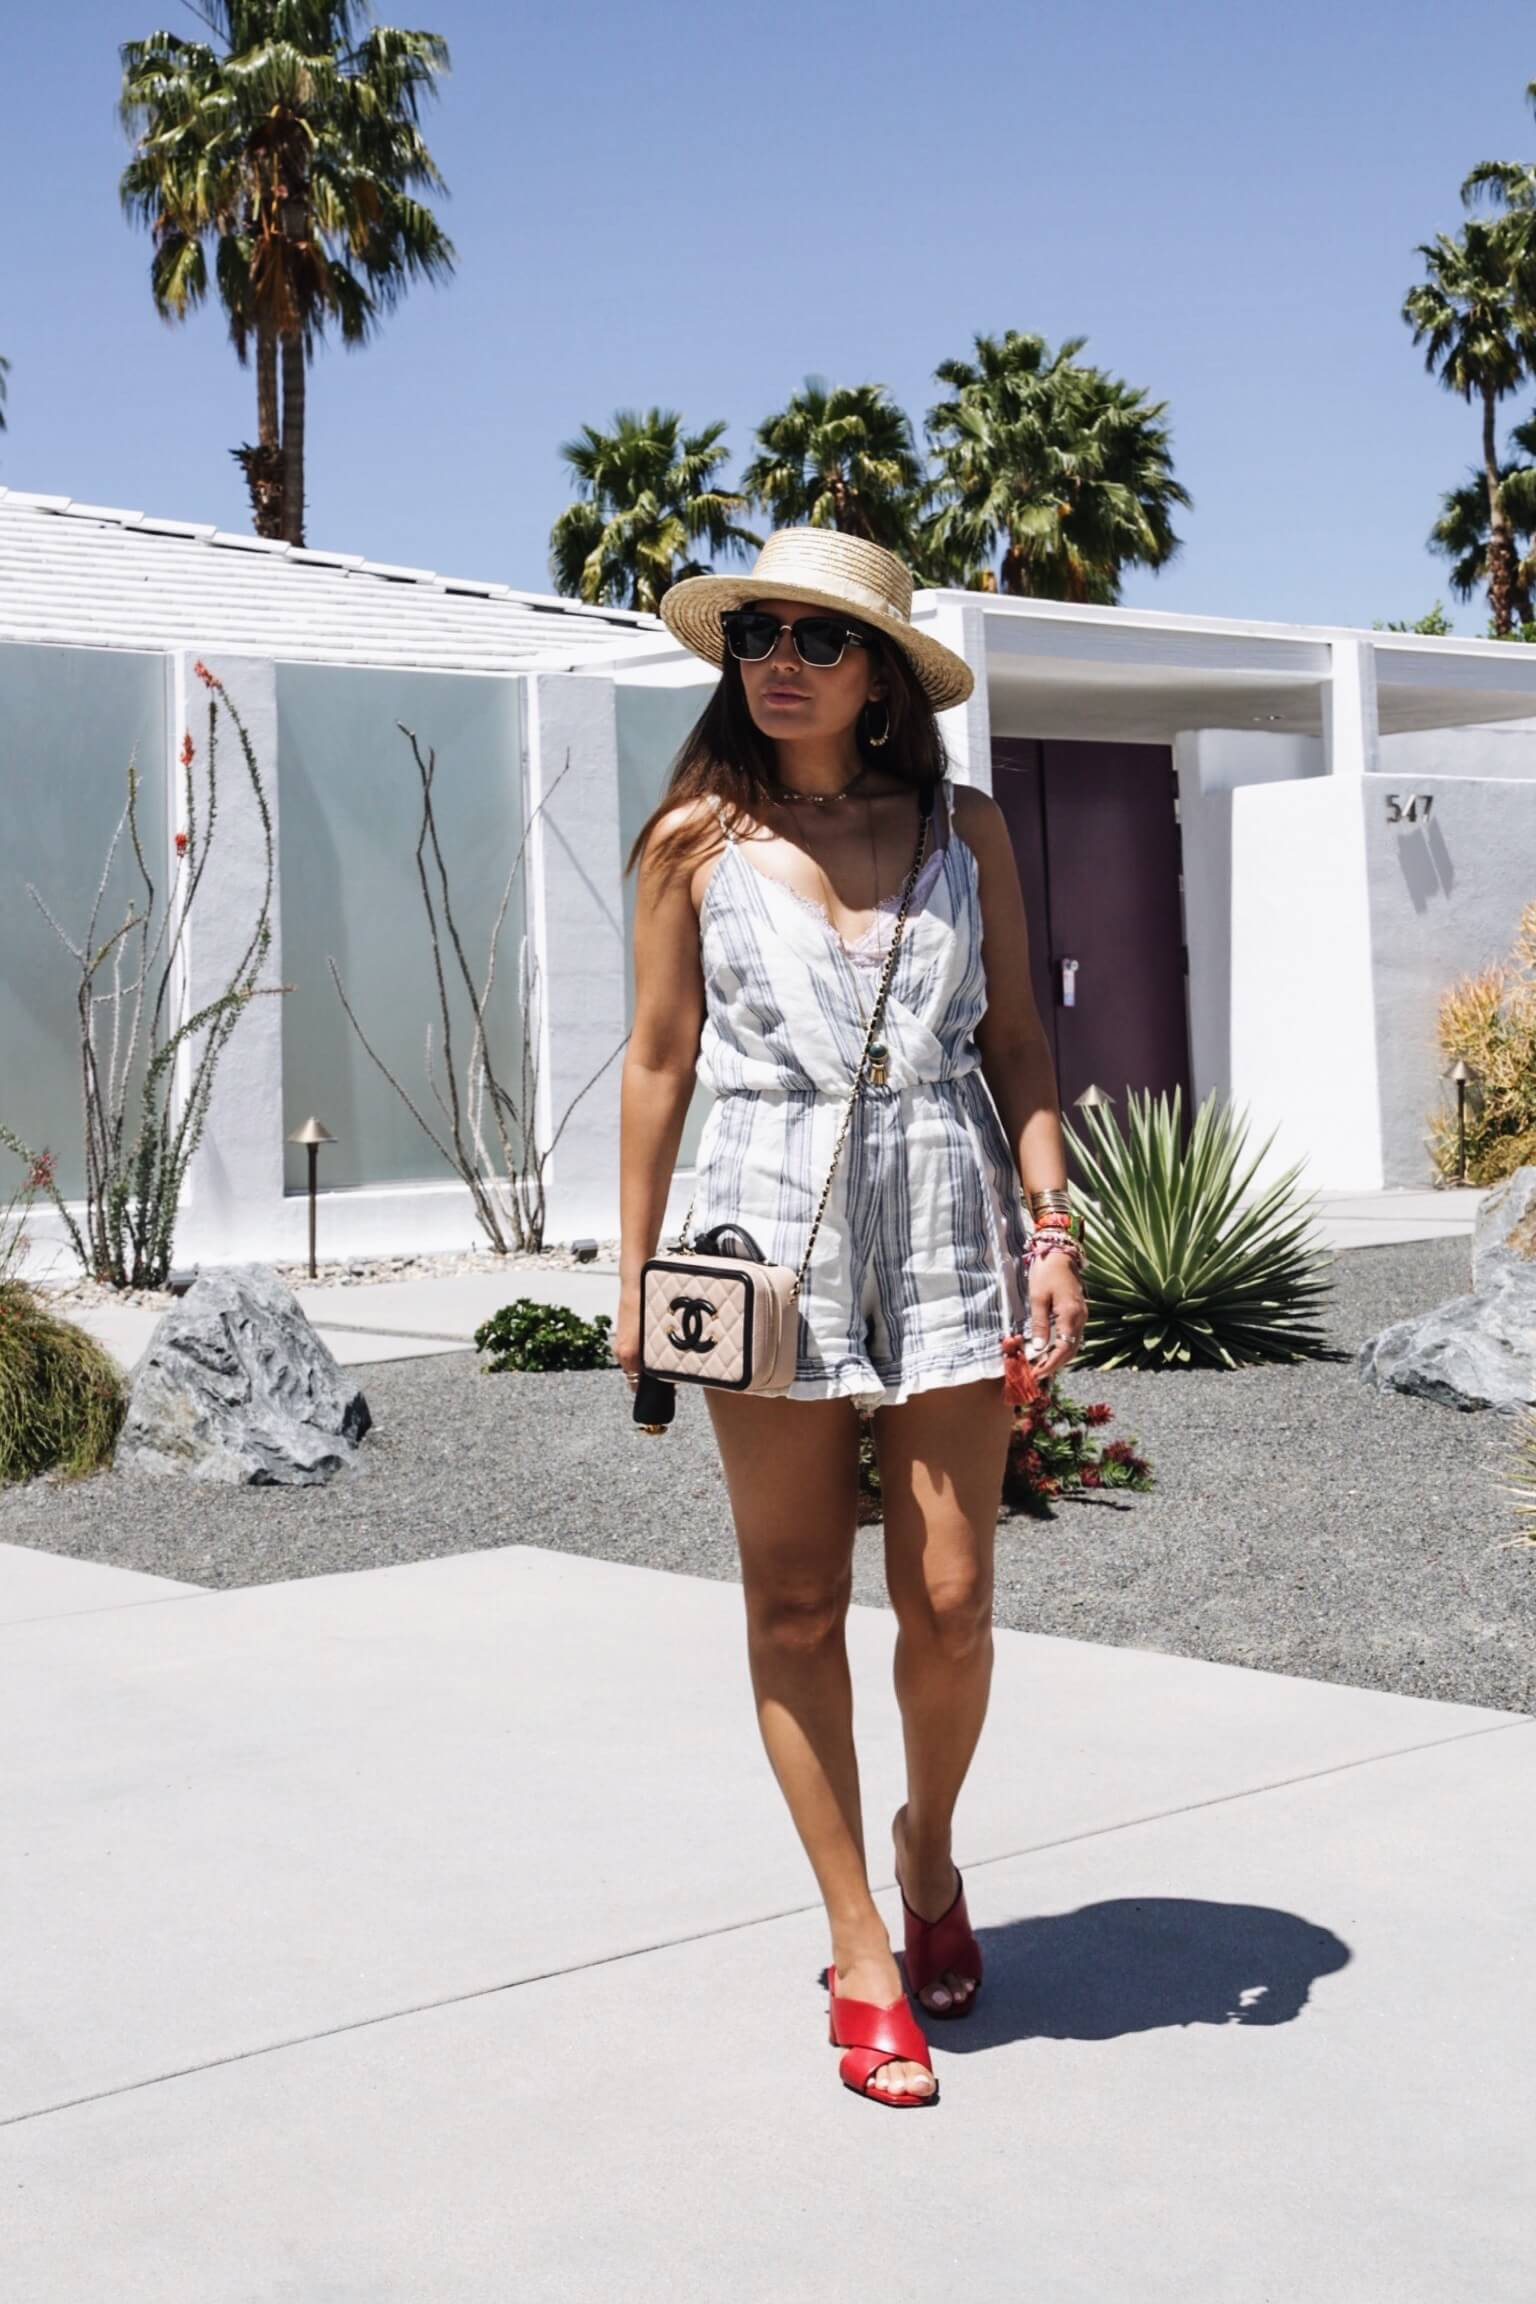 Sona Gasparian's spring look in a striped romper!